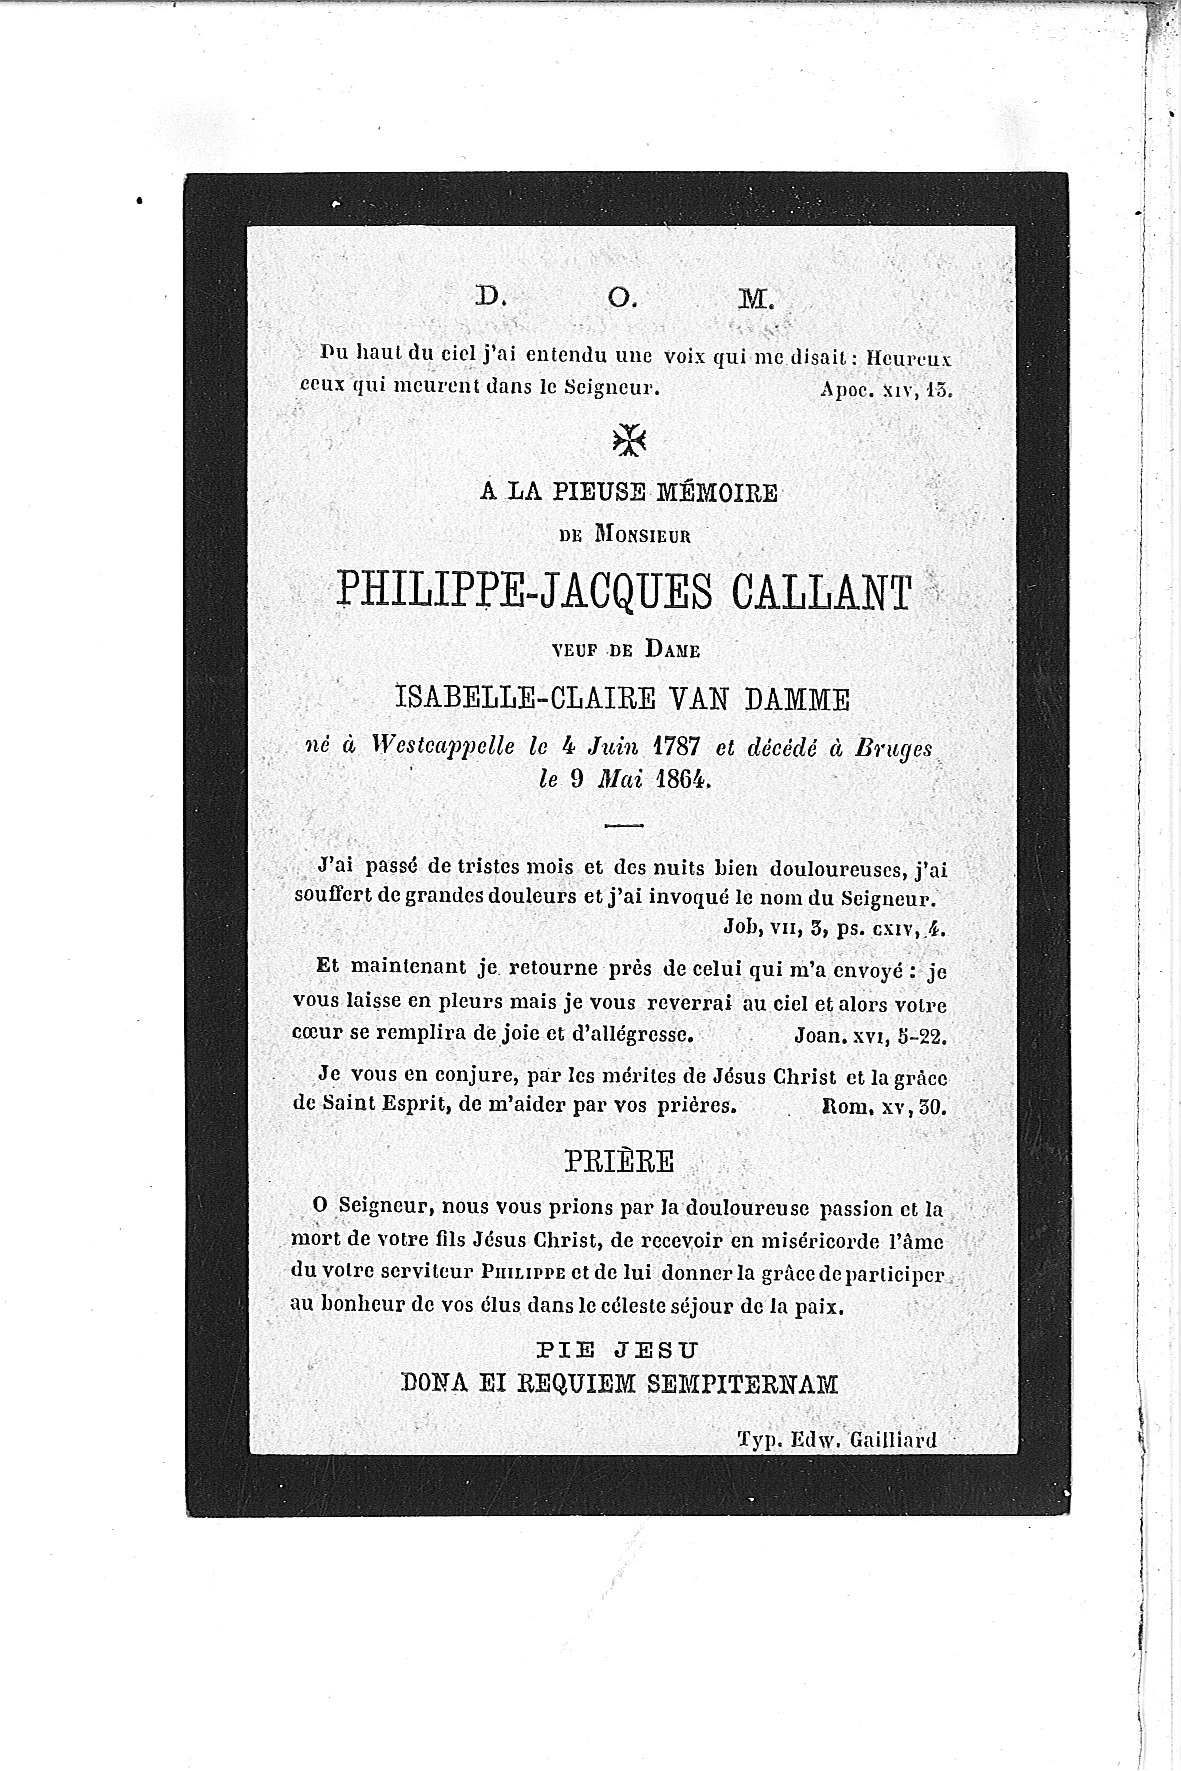 philippe-jaques(1864)20101104083918_00062.jpg